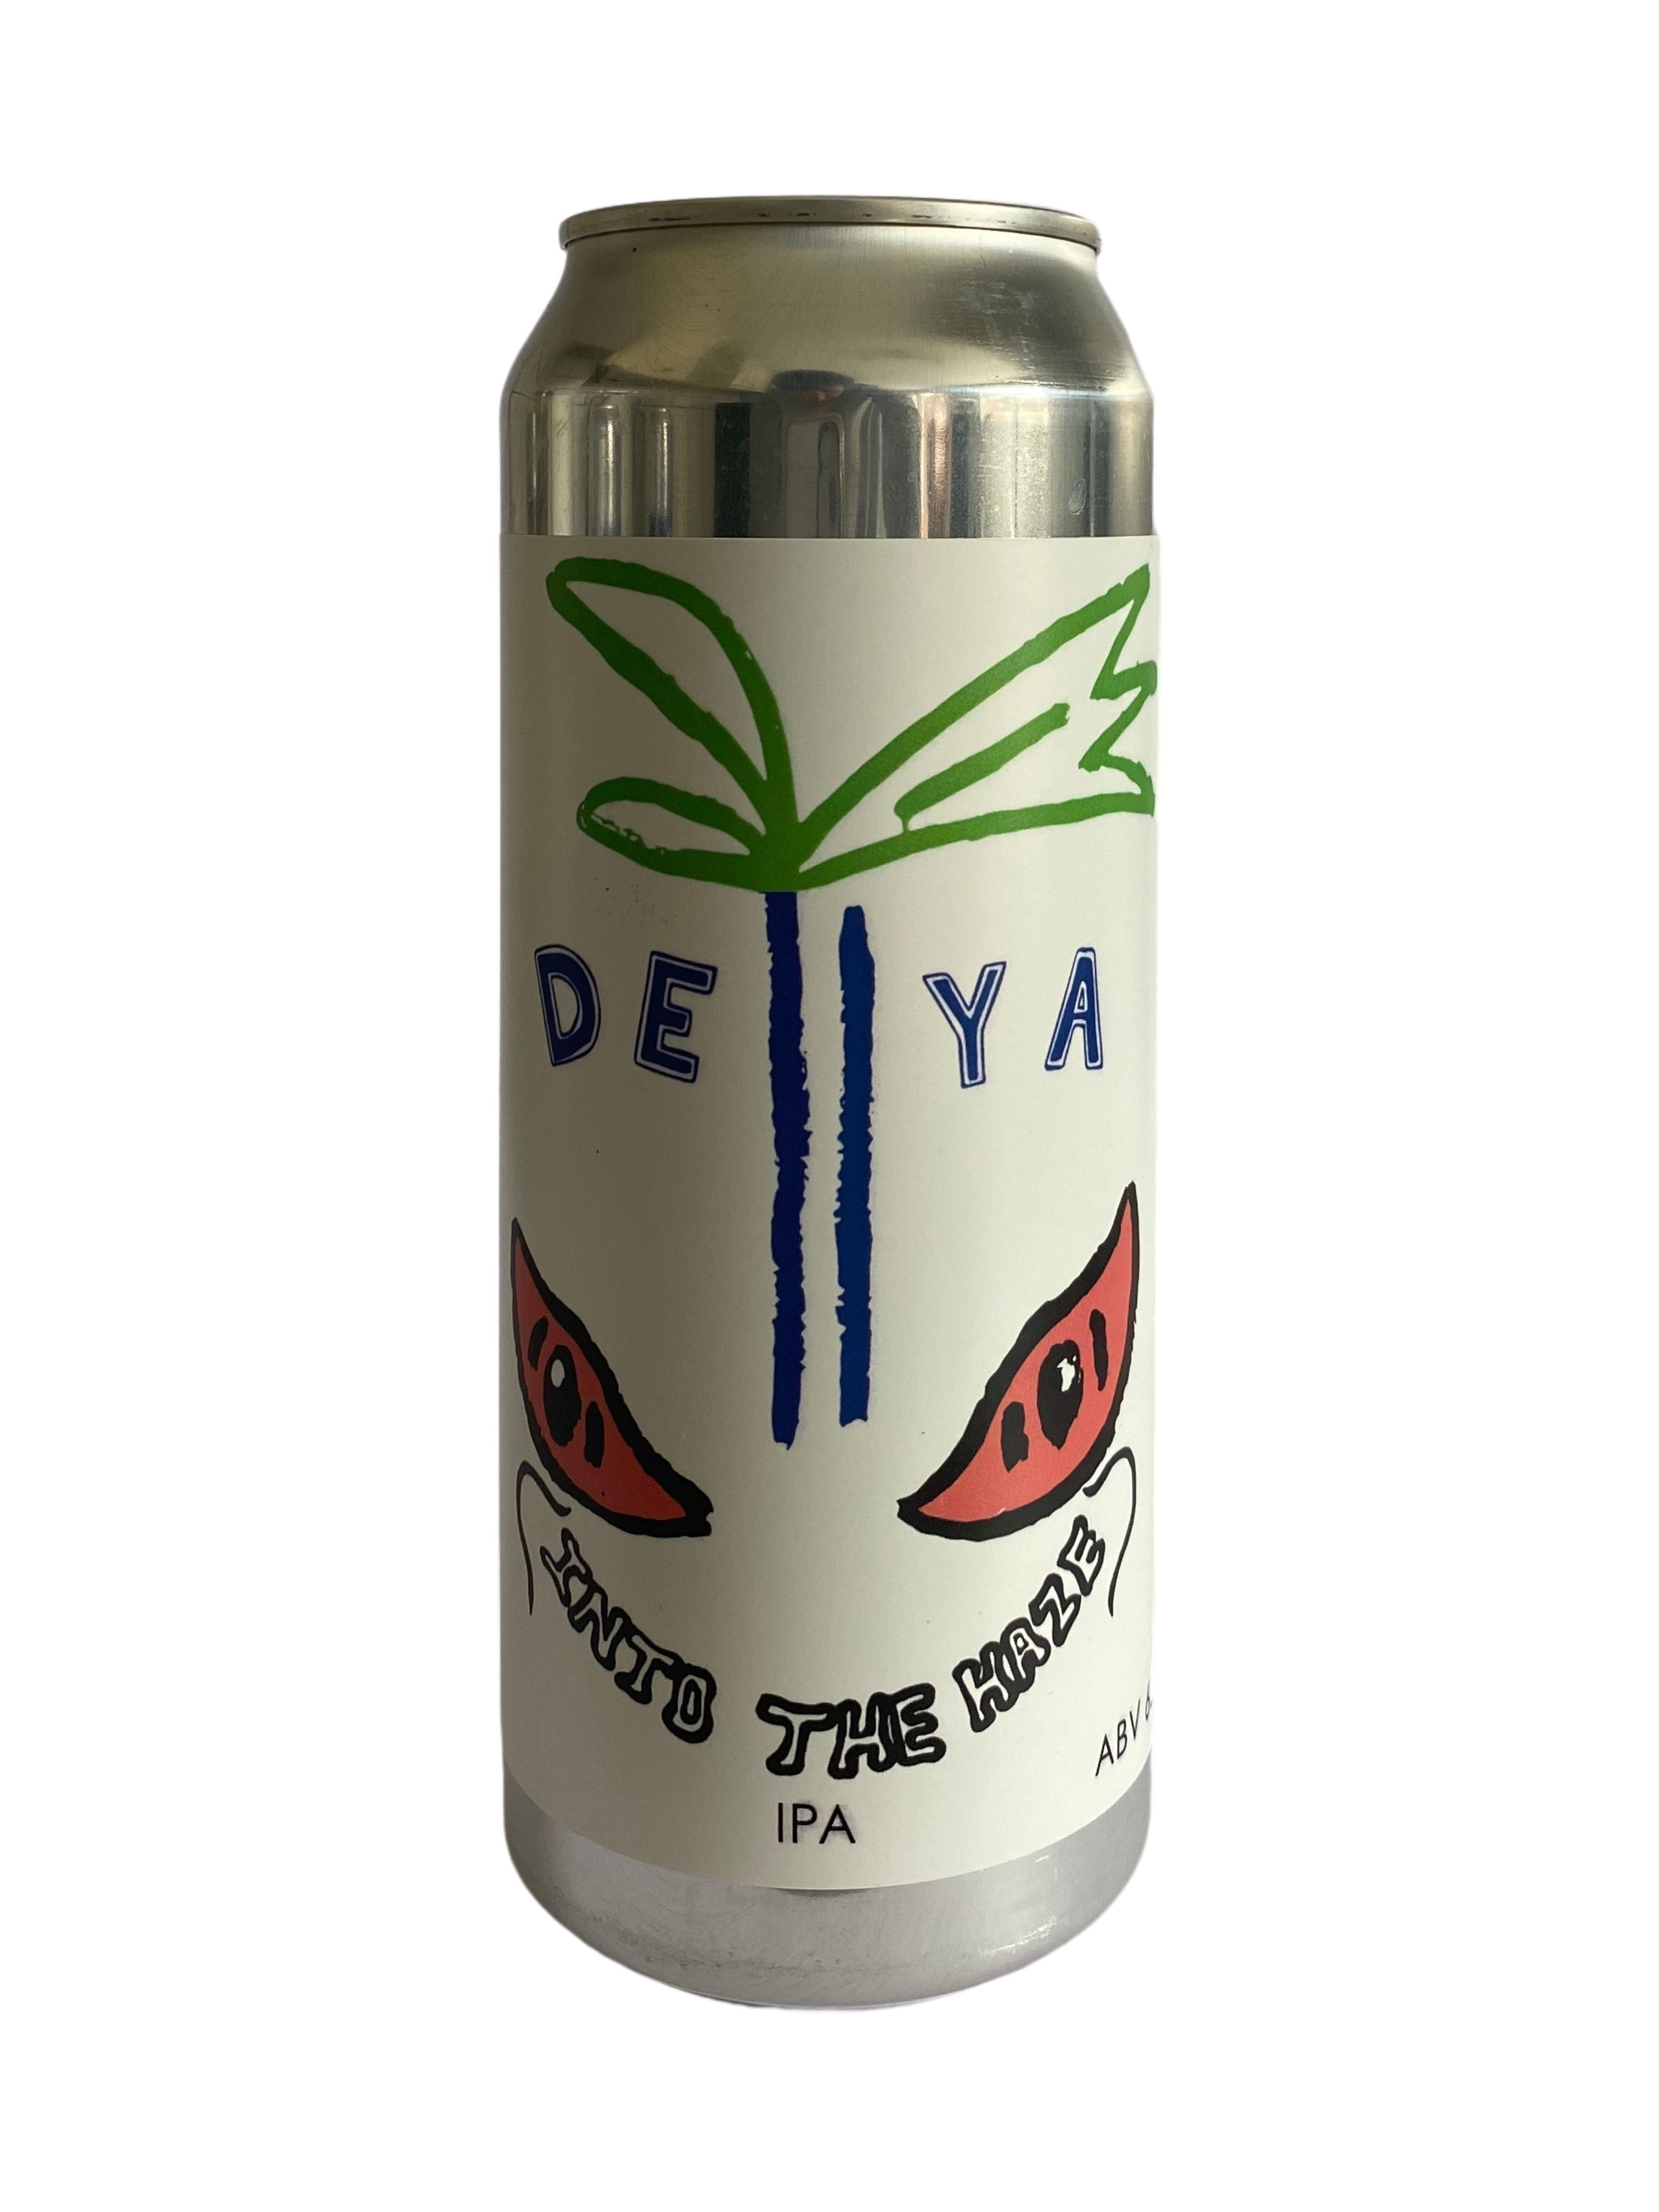 Deya - Into The Haze - NEIPA - 6.2%  (4.10 UT)